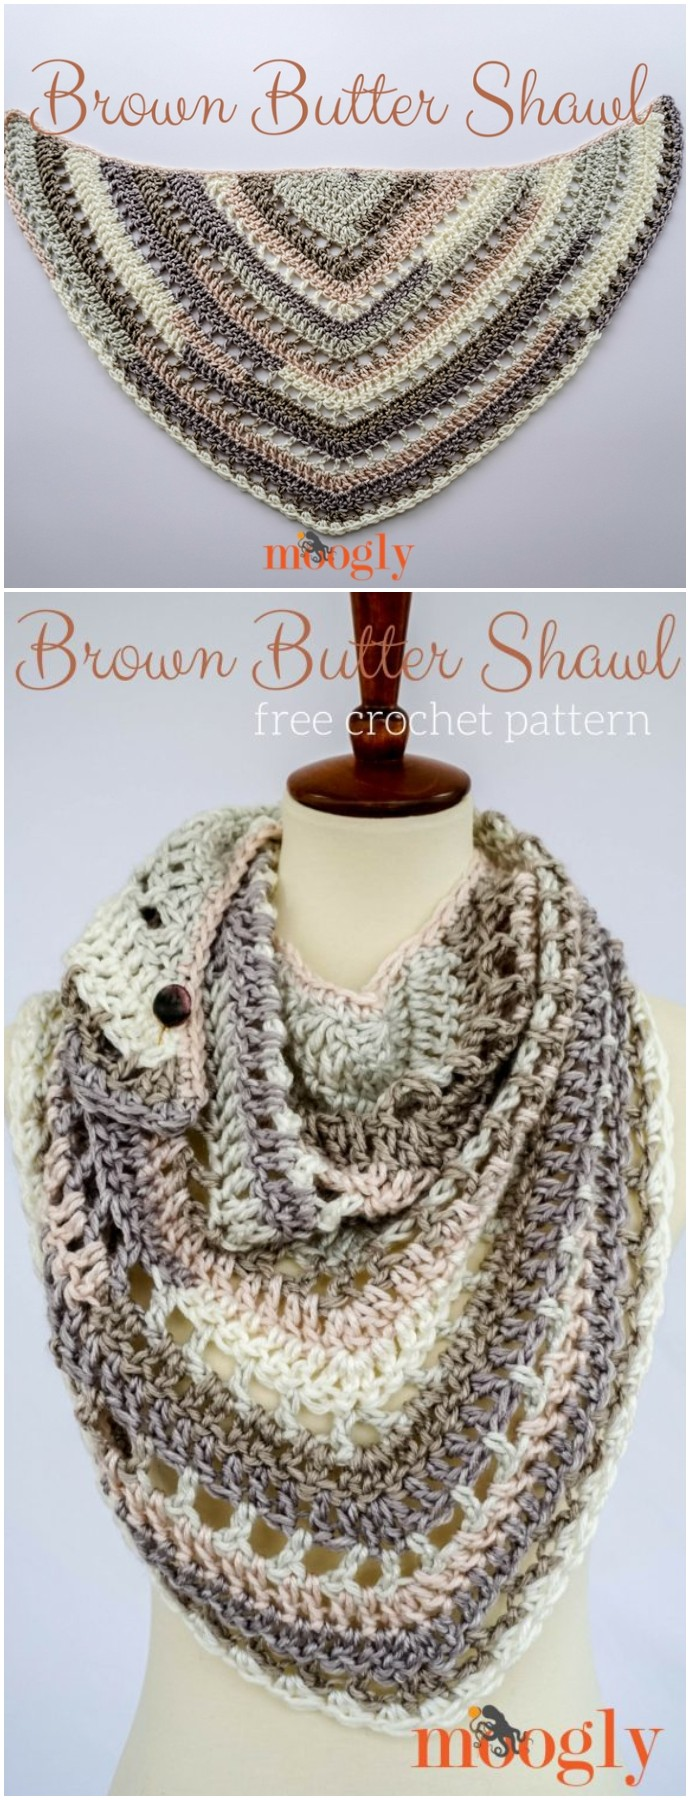 Free Crochet Brown Butter Shawl